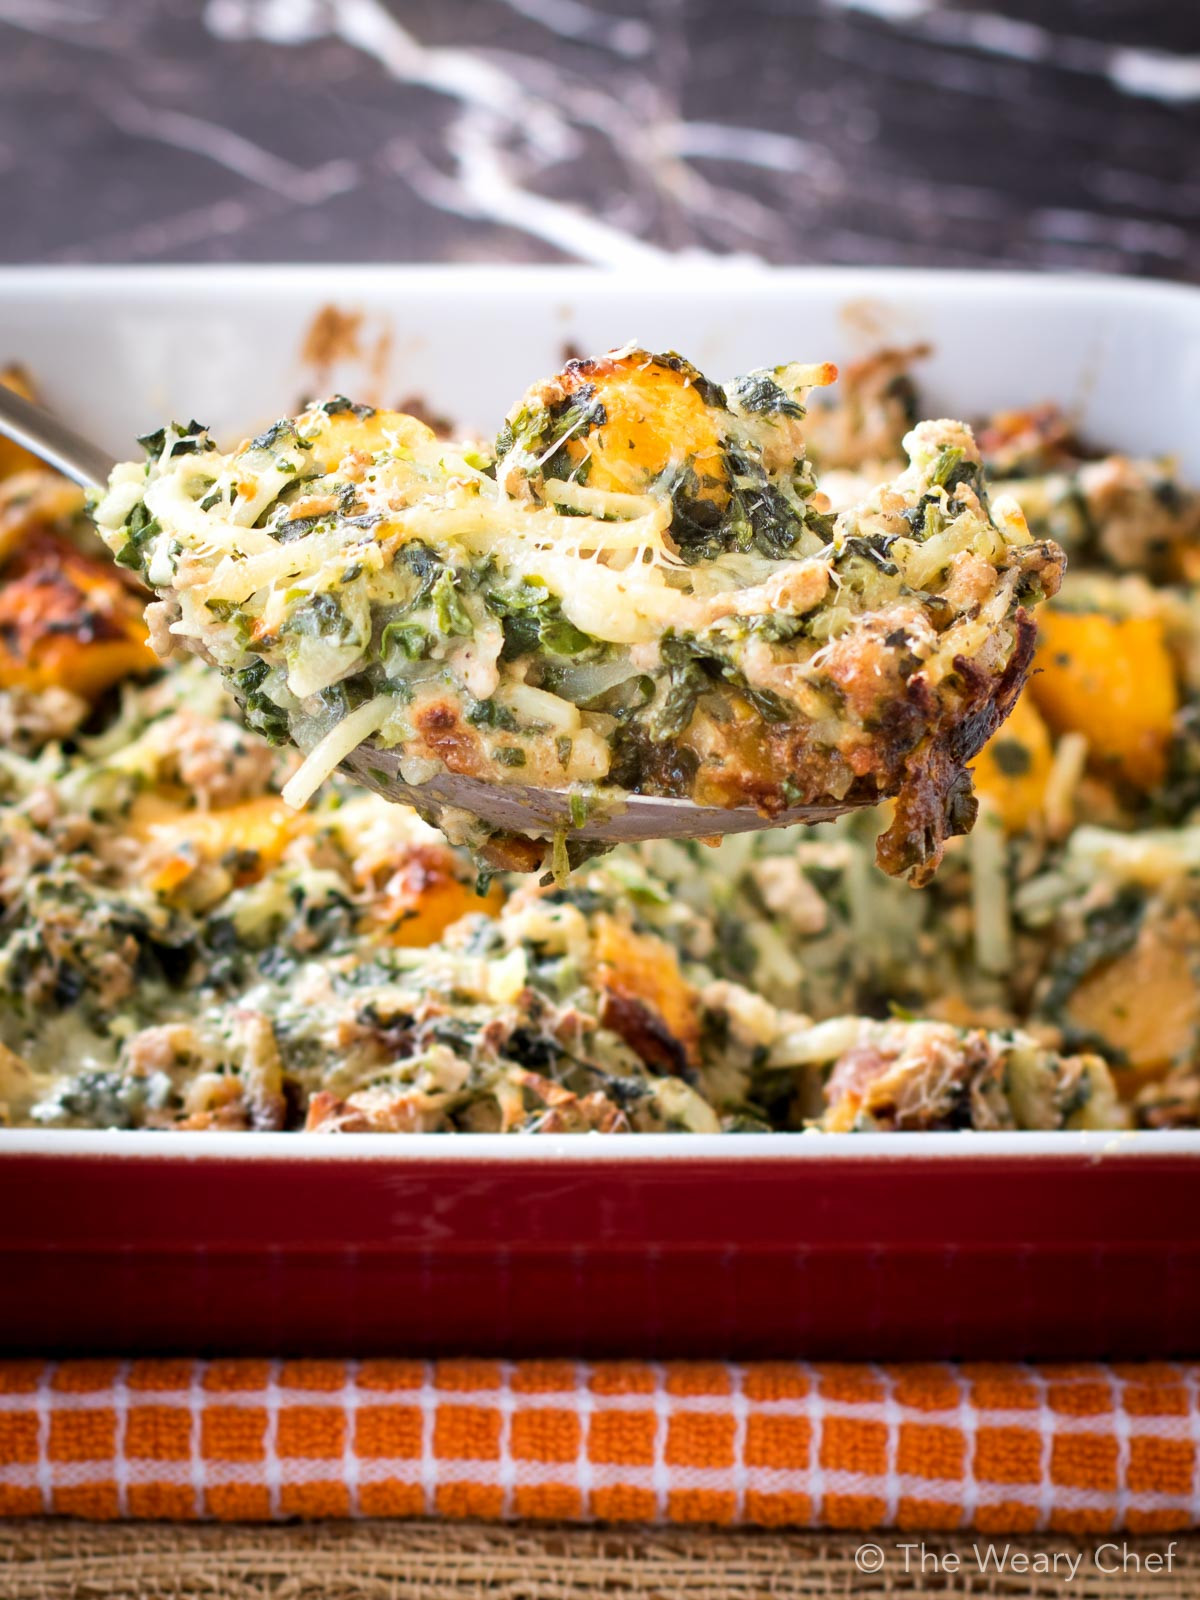 Healthy Fall Casseroles  Fall Potluck Casserole with Turkey and Squash The Weary Chef